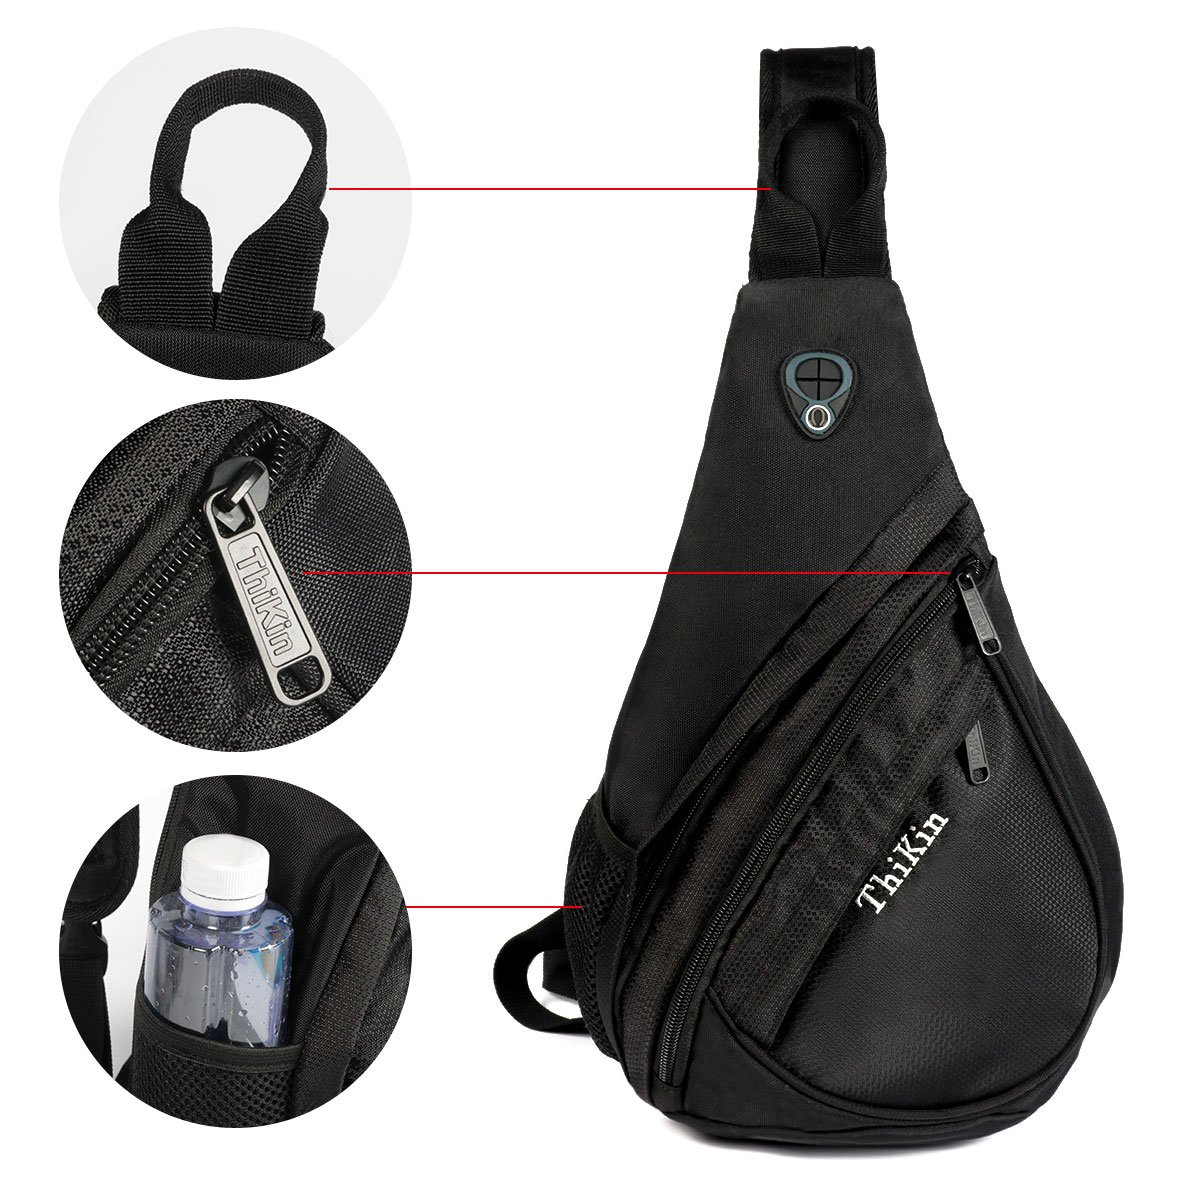 1712025cb5 Amazon.com  ThiKin Packable Shoulder Backpack Sling Chest CrossBody Bag  Cover Pack Rucksack for Bicycle Sport Hiking Travel Black  Sports   Outdoors